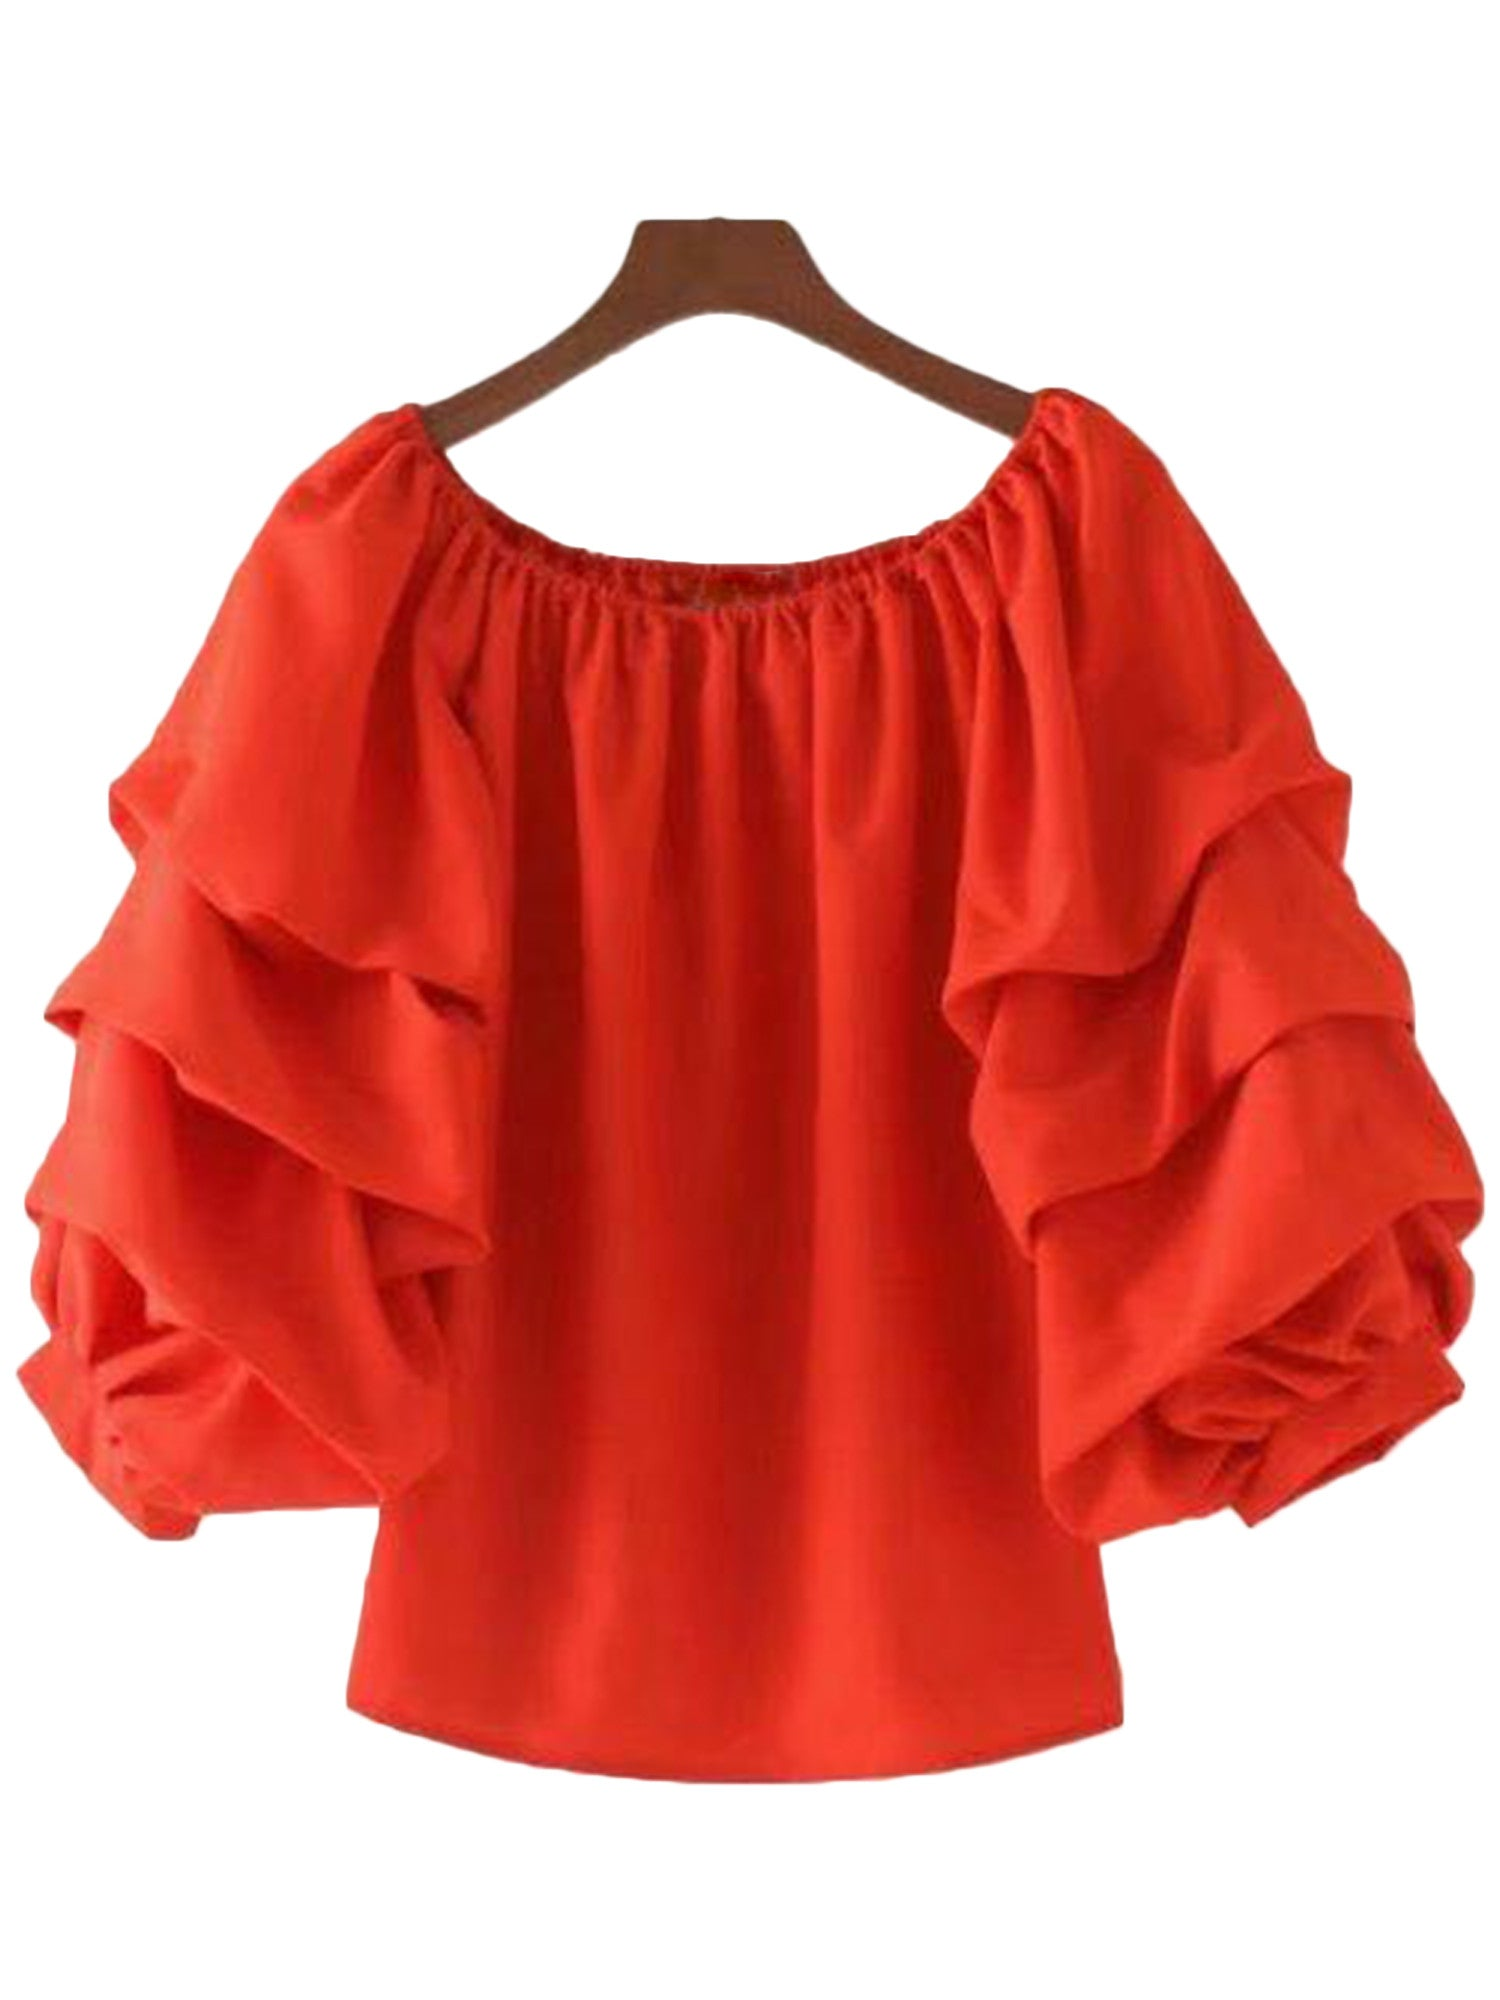 'Libby' Red Ruffled Sleeve Off Shoulder Top